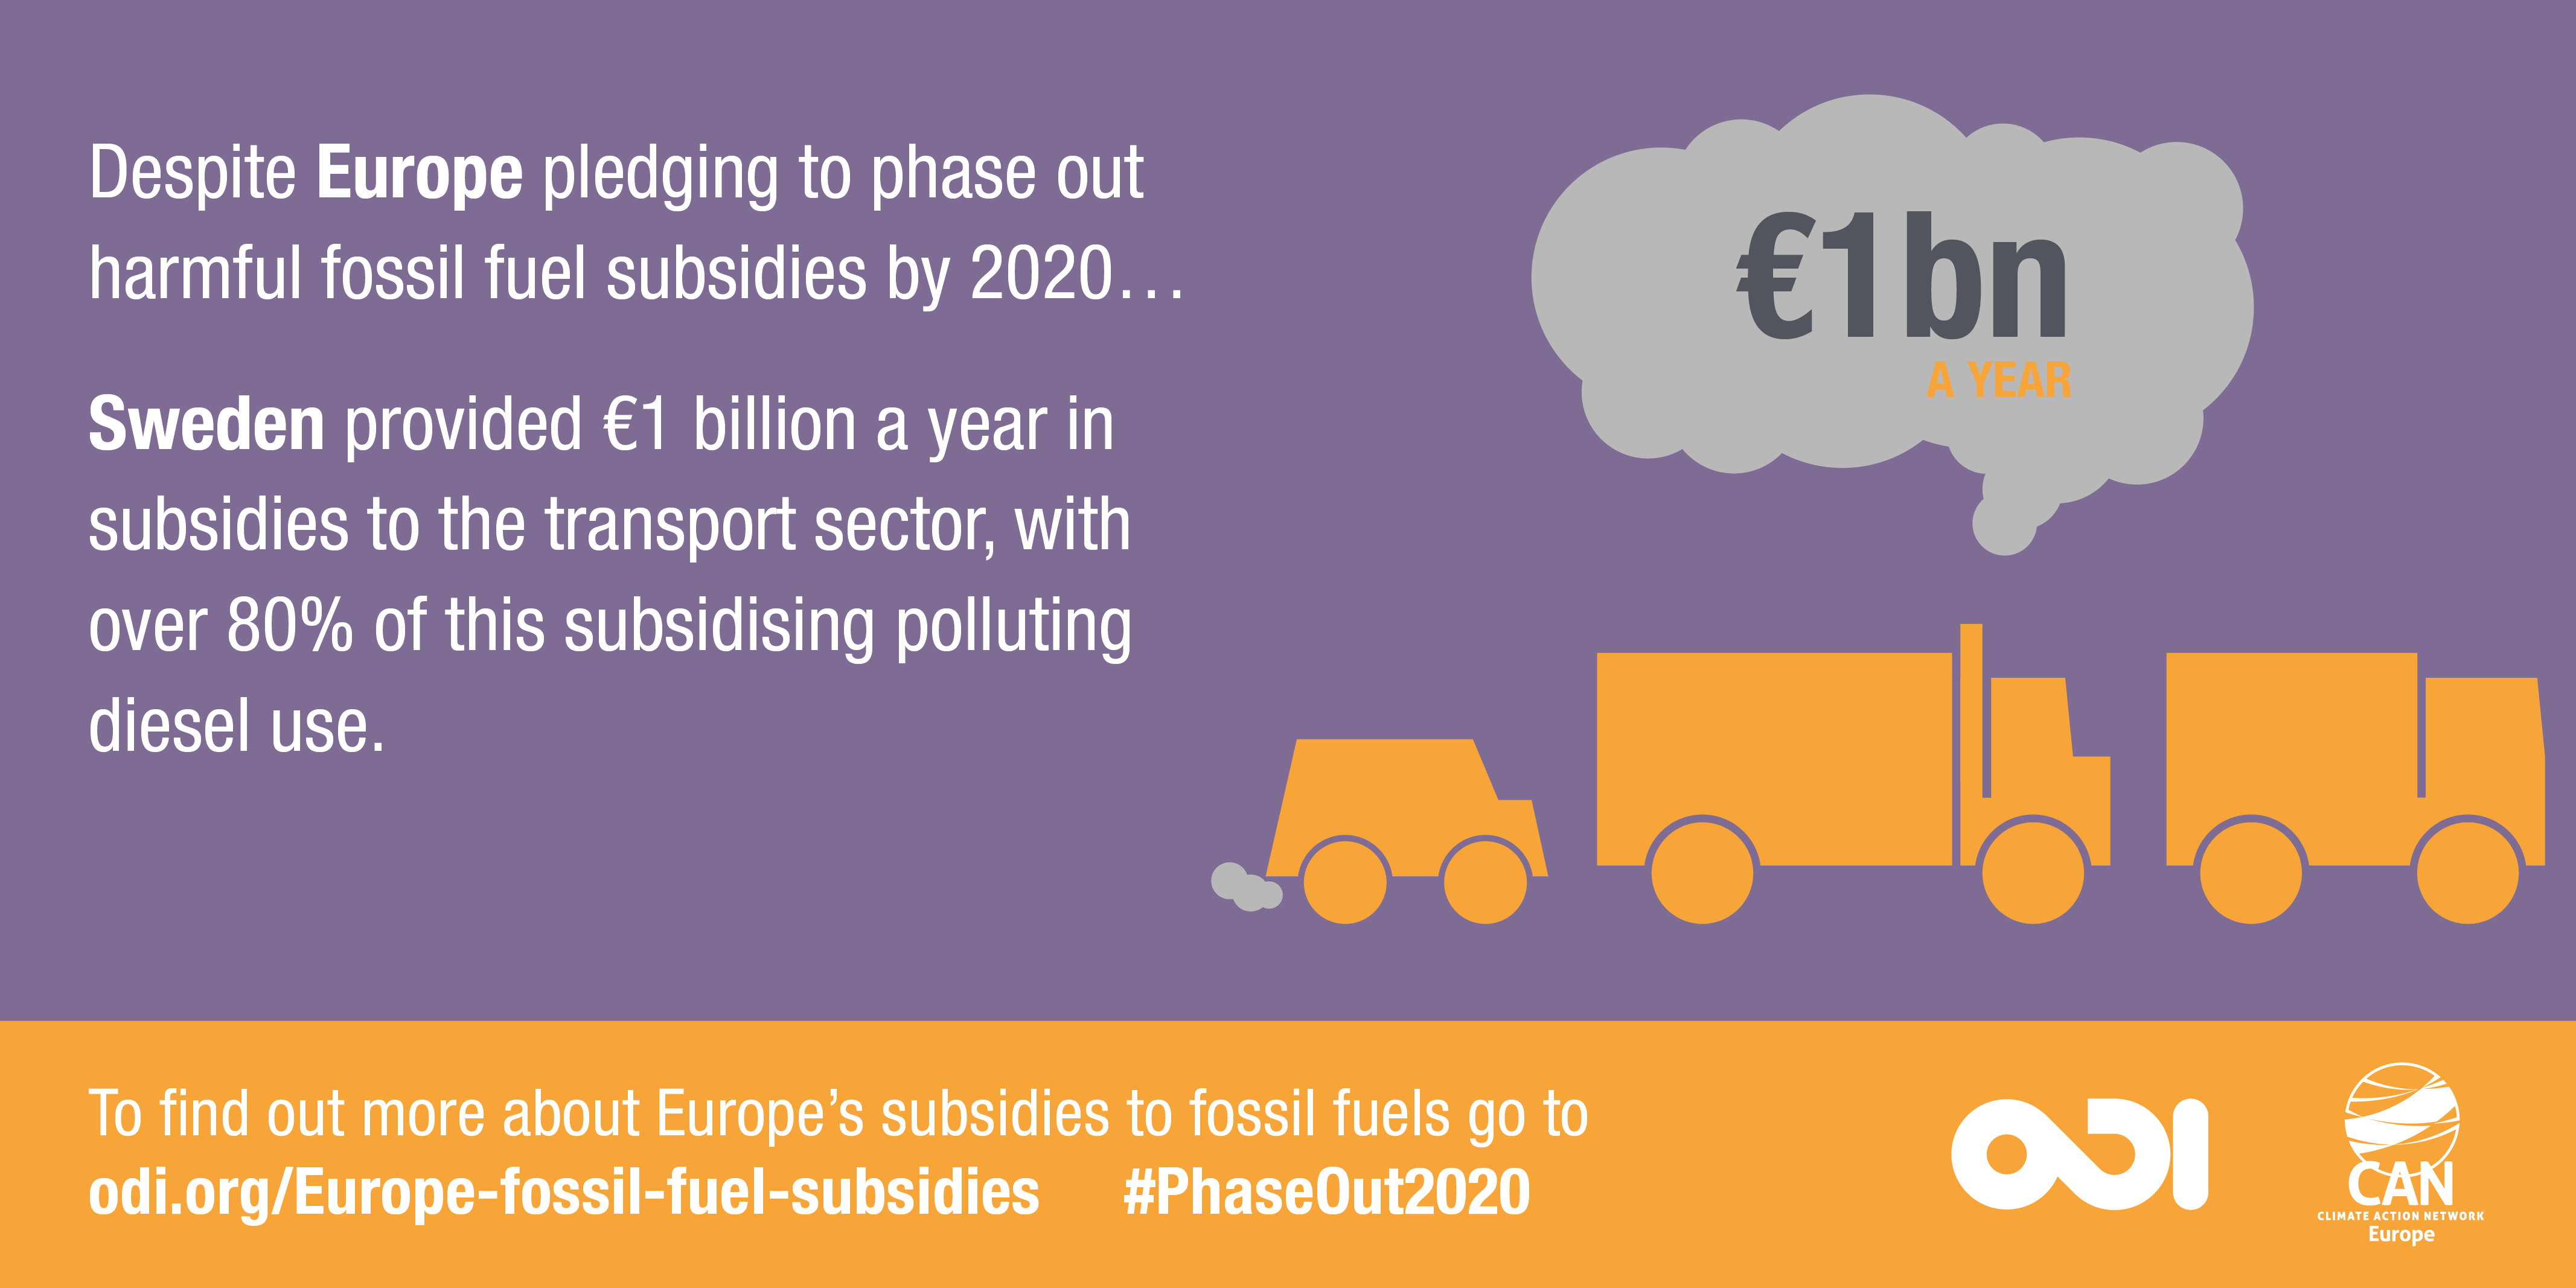 Infographic: Sweden provided €1 billion a year in subsidies to the transport sector, with over 80% of this subsidising polluting diesel use.